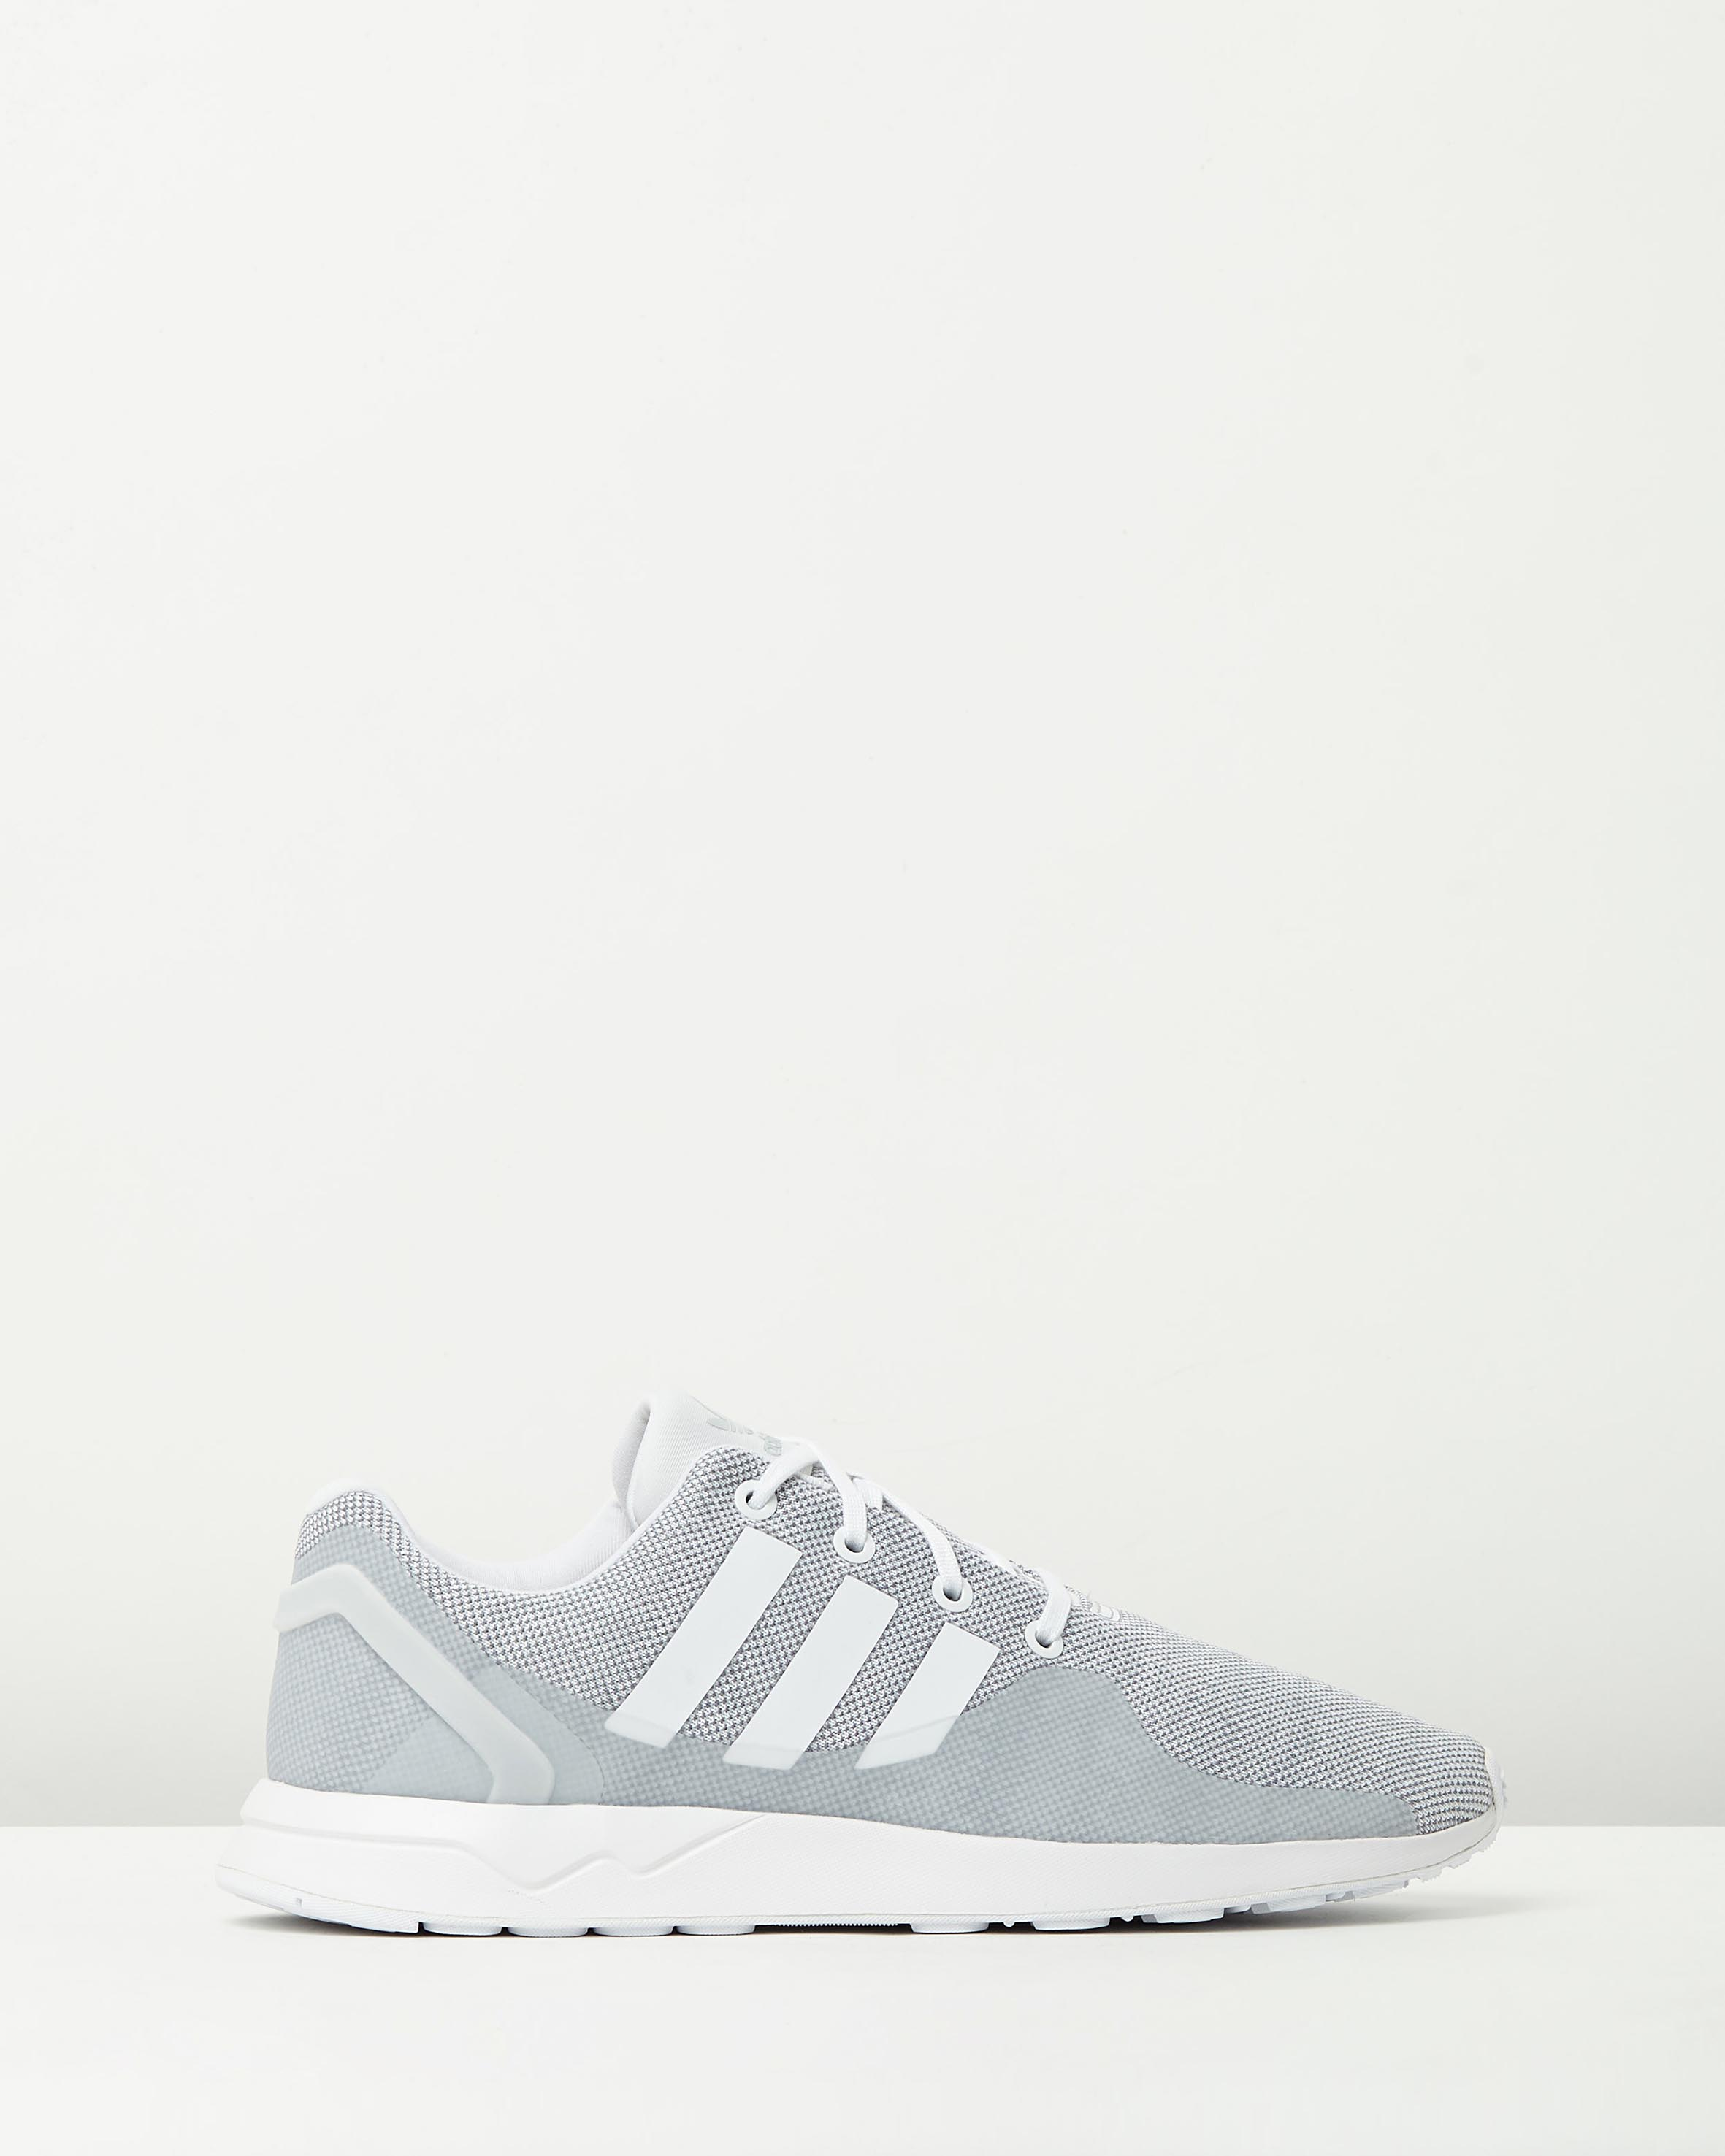 promo code 56d7c 5be12 Adidas Men's ZX Flux ADV Tech, GREY/WHITE